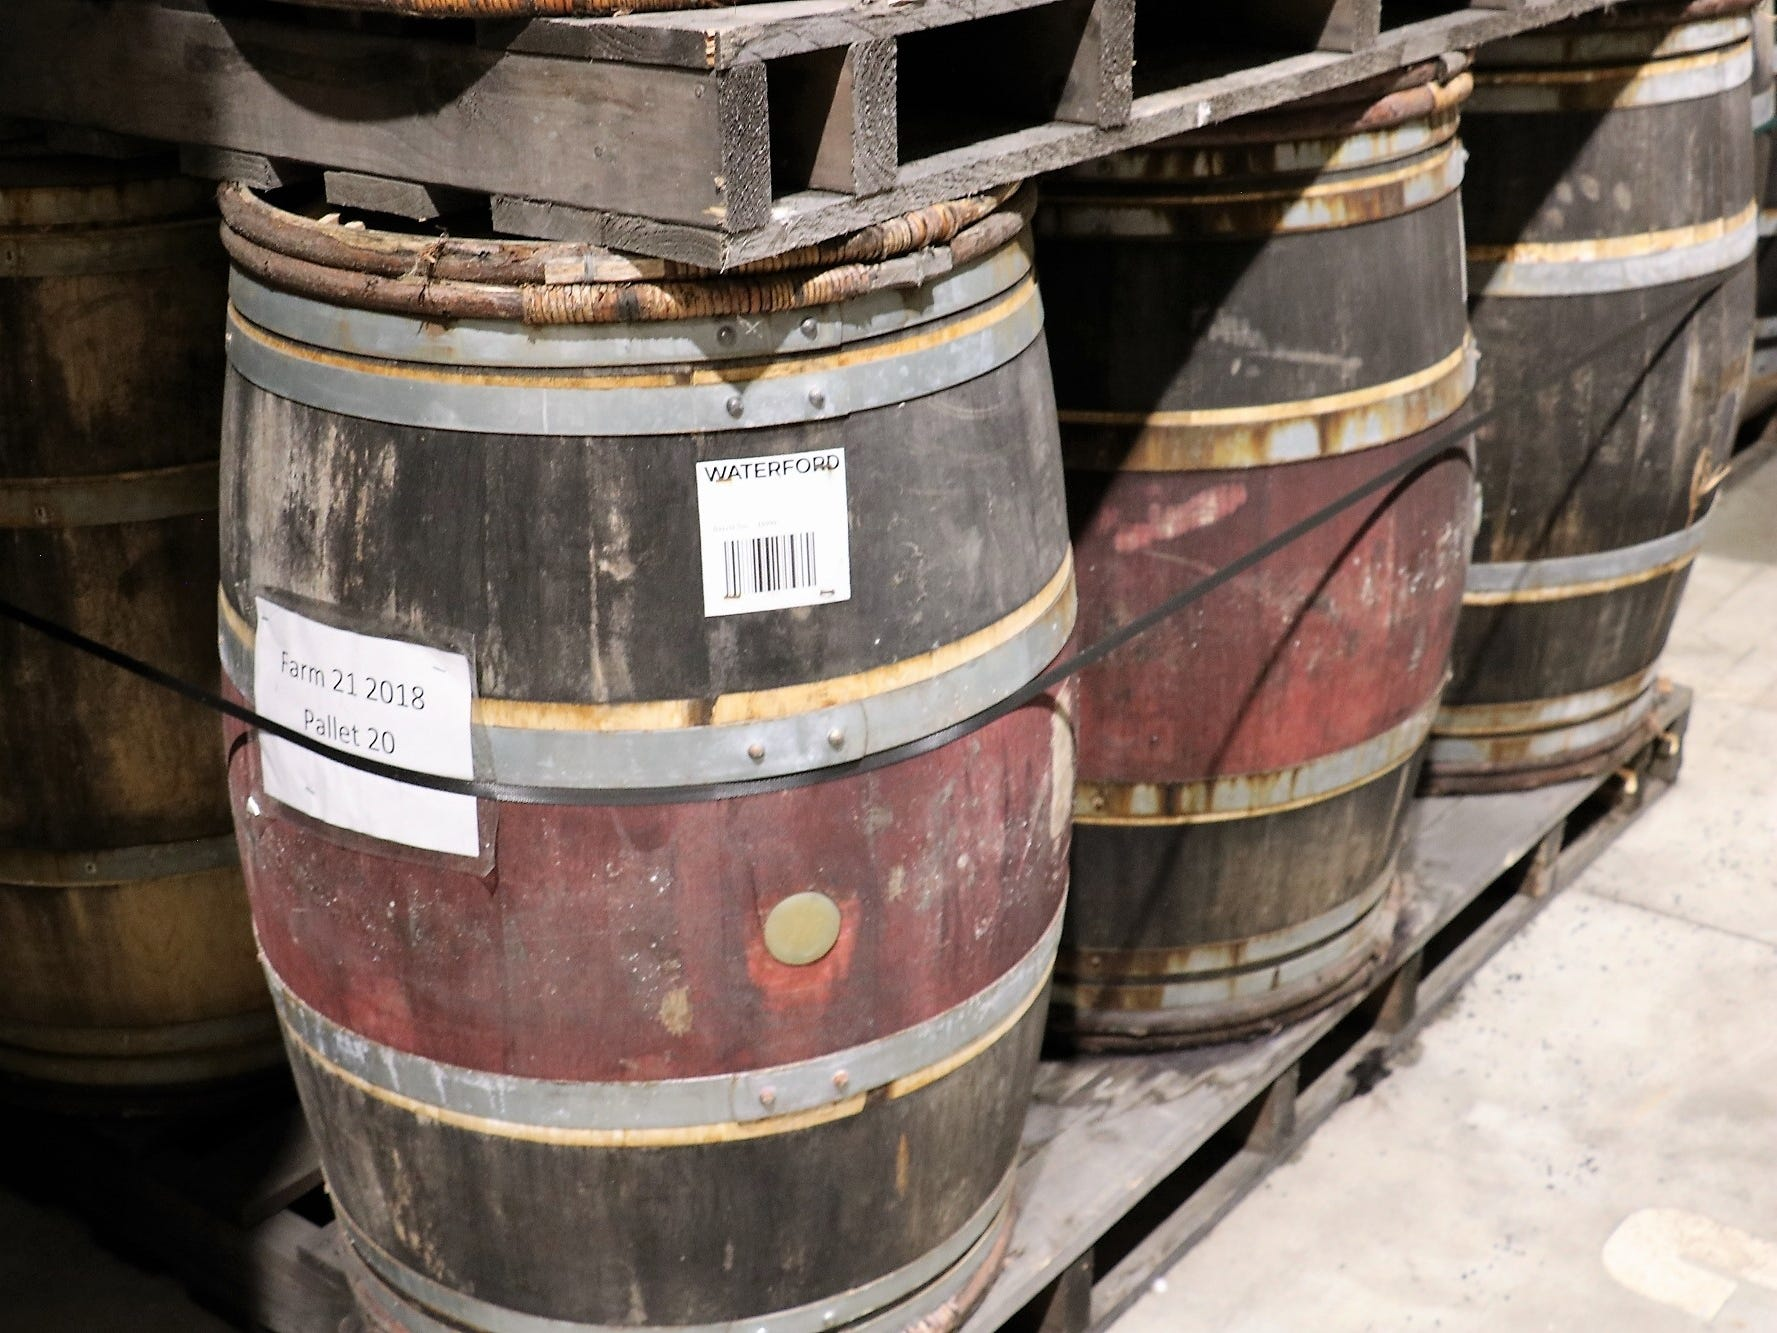 "Casks from different sources showcase distinctive styles and colors. The bar code on each barrel isn't merely used for keeping track of placement or dates, but also offers an instant look at the vast store of data tracked for every batch. ""All of this is for curious people, if you are an inquisitive drinker,"" Newton says."